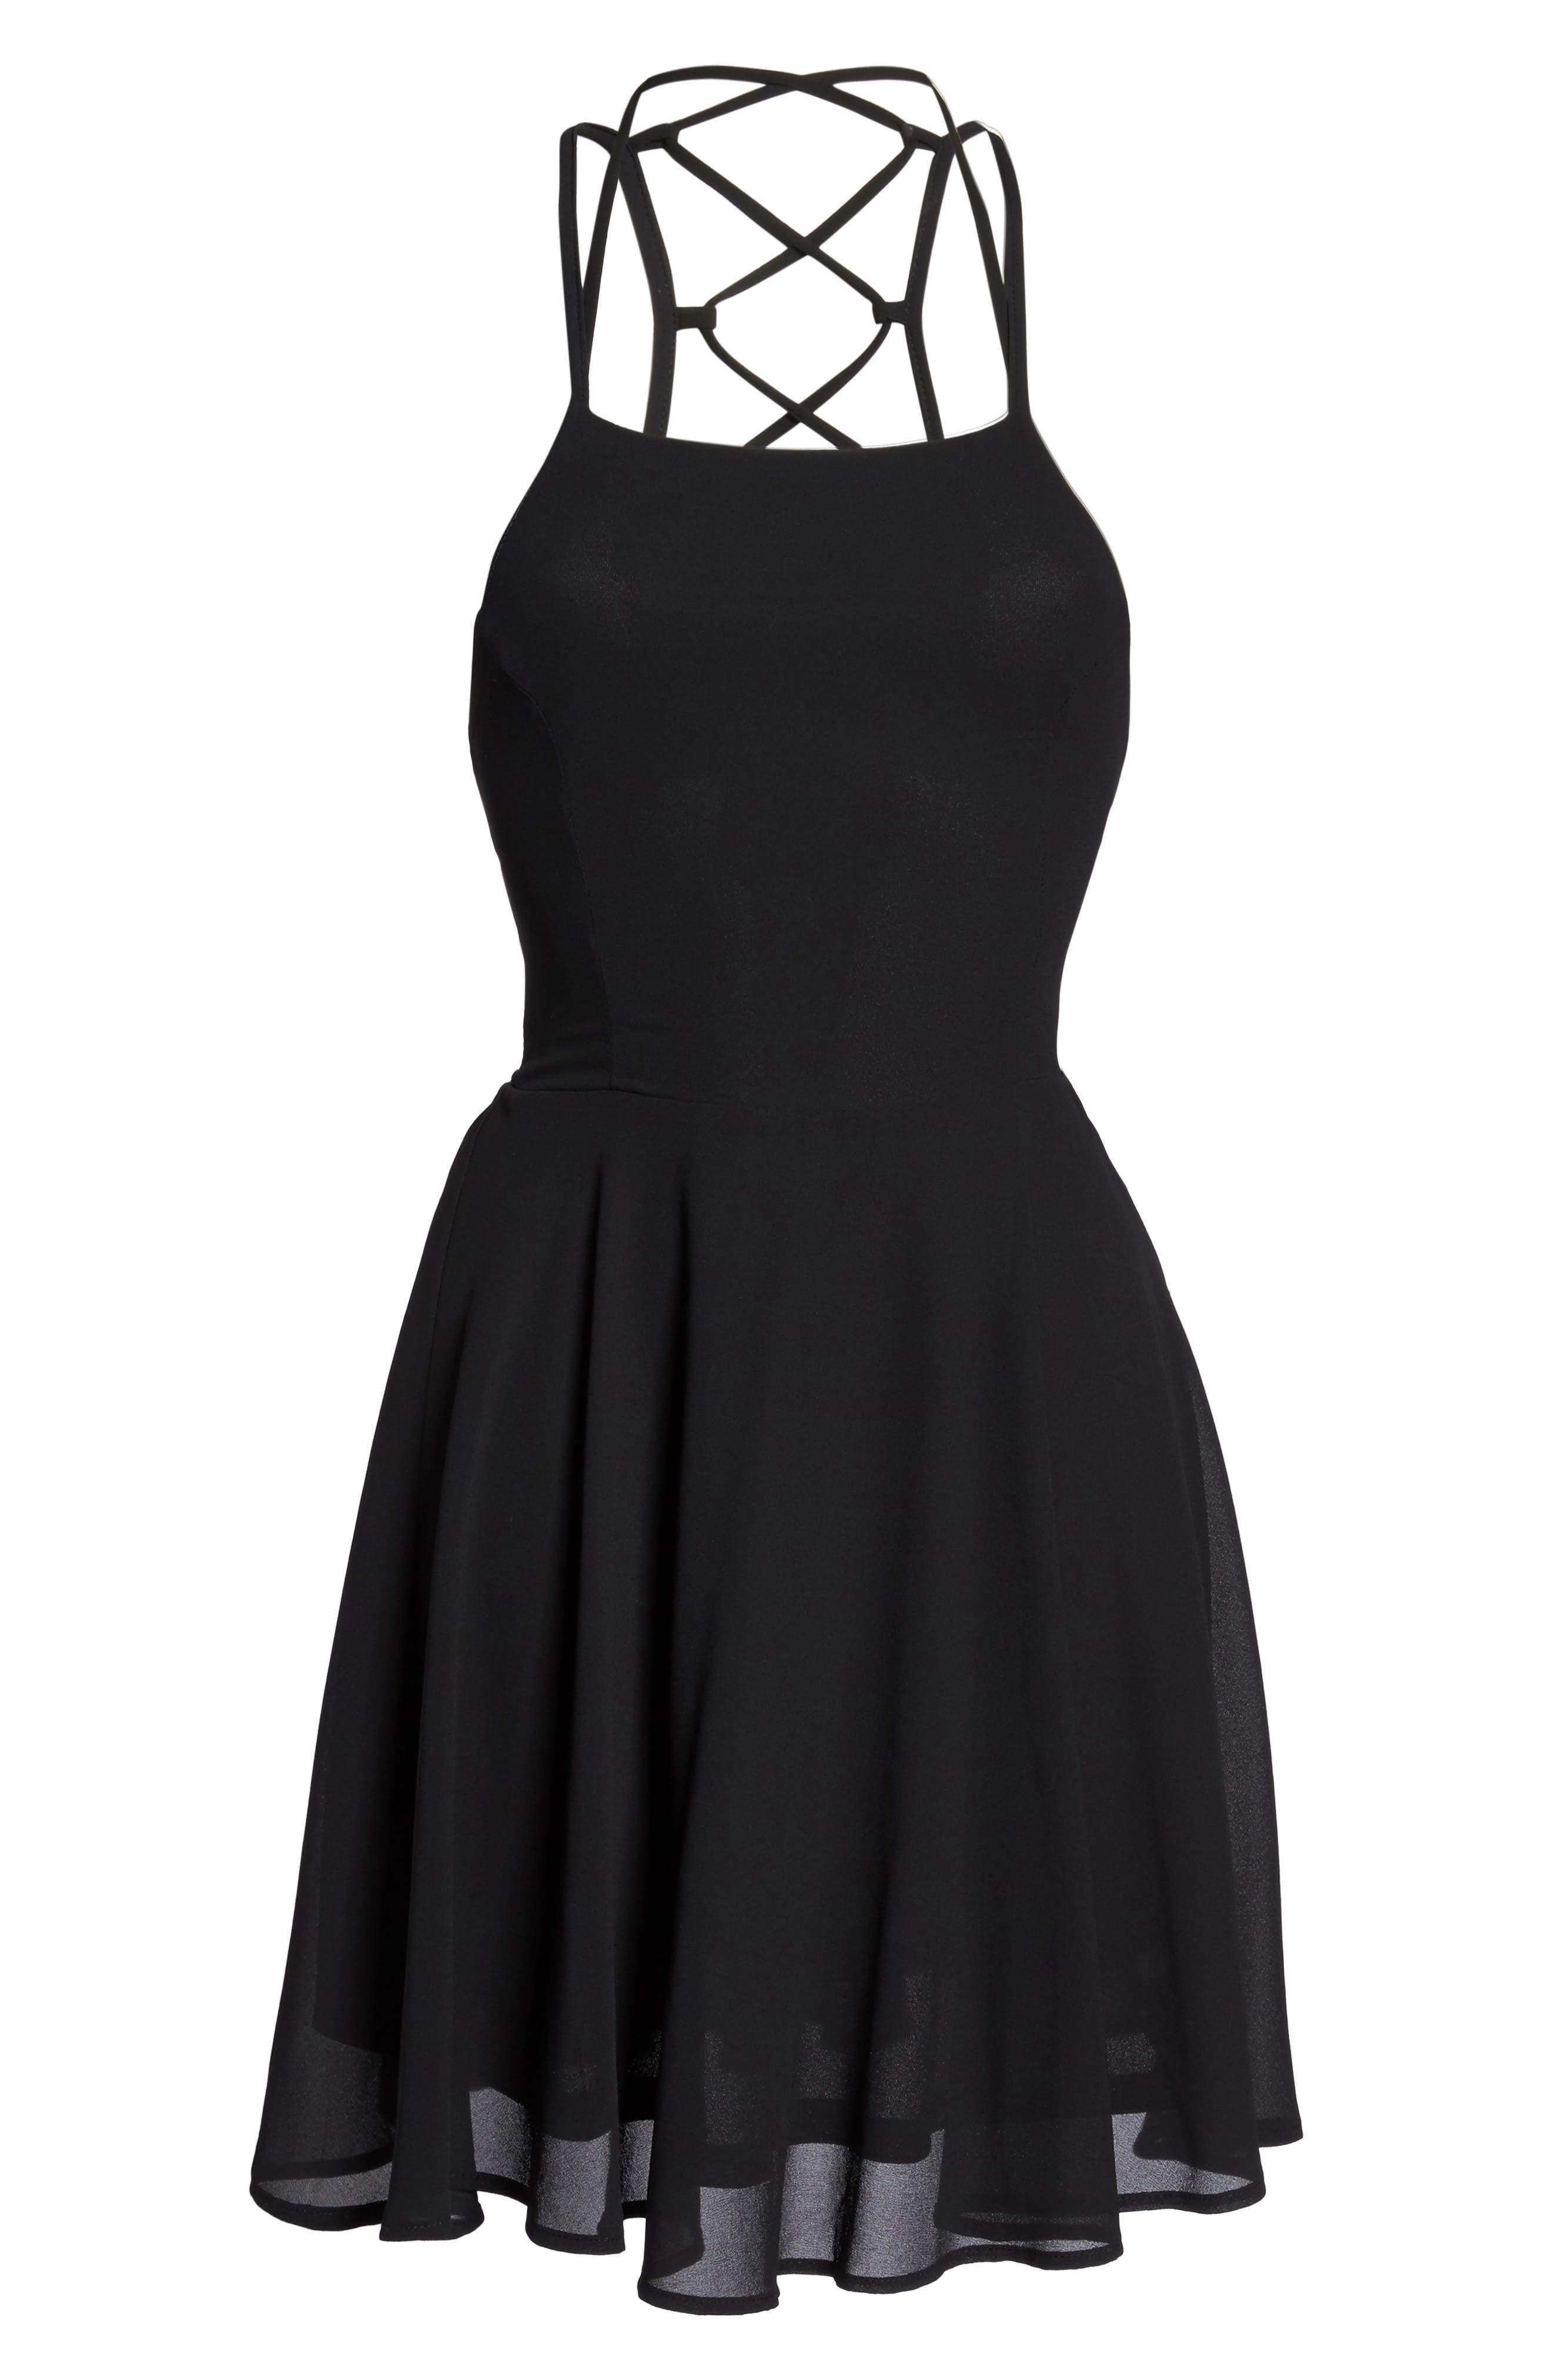 LULUS,                             Good Deeds Lace-Up Skater Dress,                             Alternate thumbnail 7, color,                             BLACK